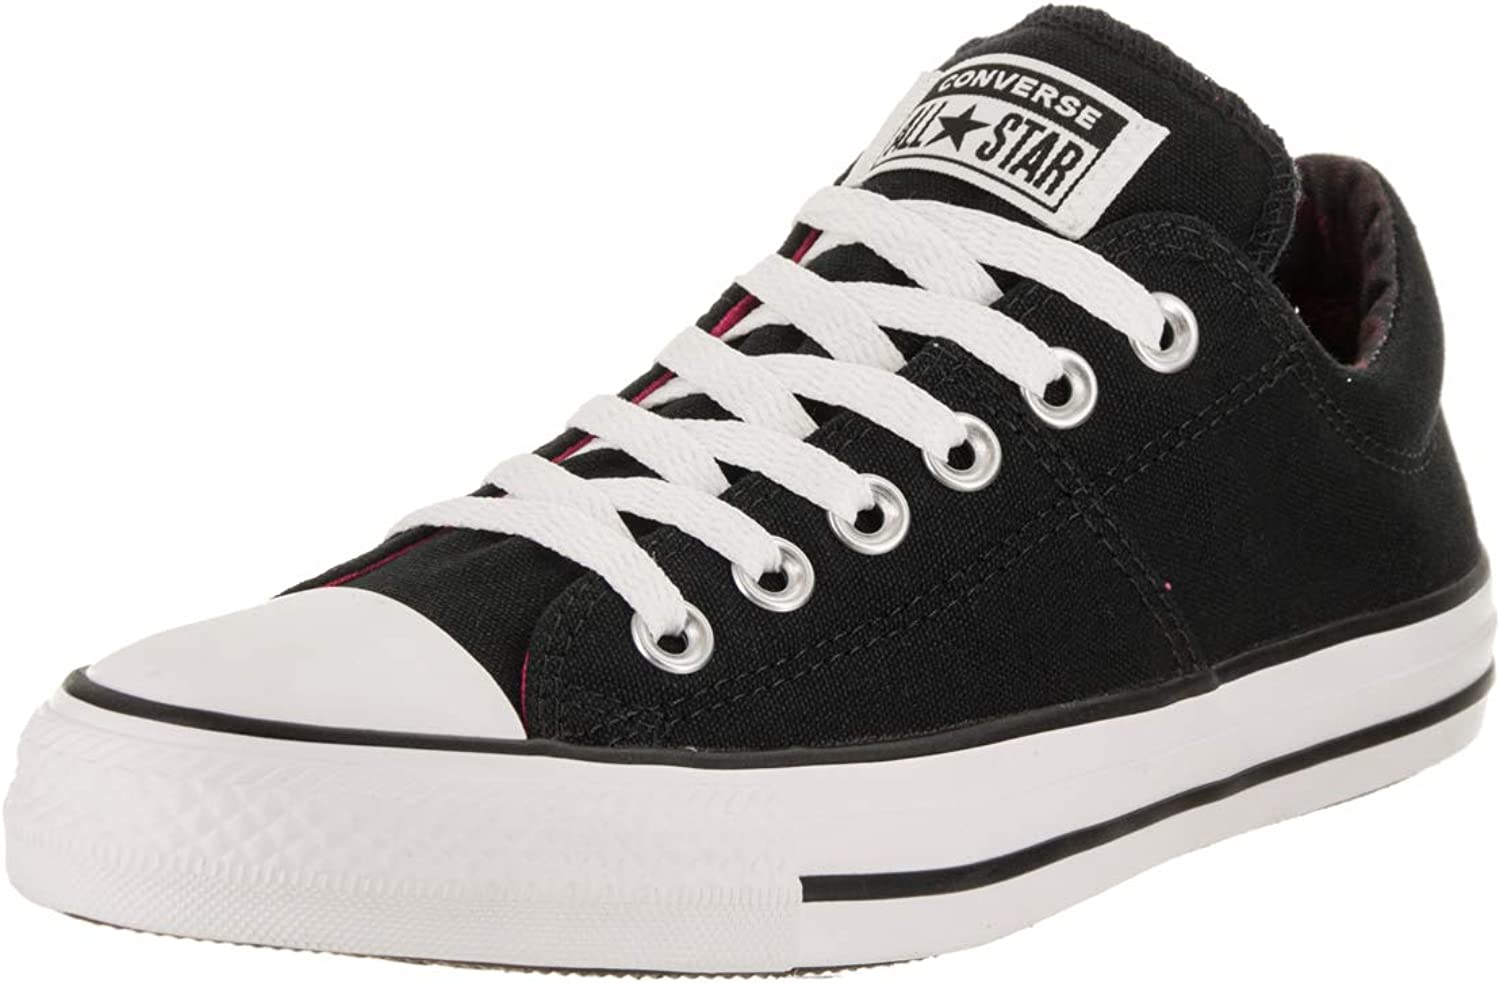 Converse Women's Chuck Taylor Madison Ox Casual shoes